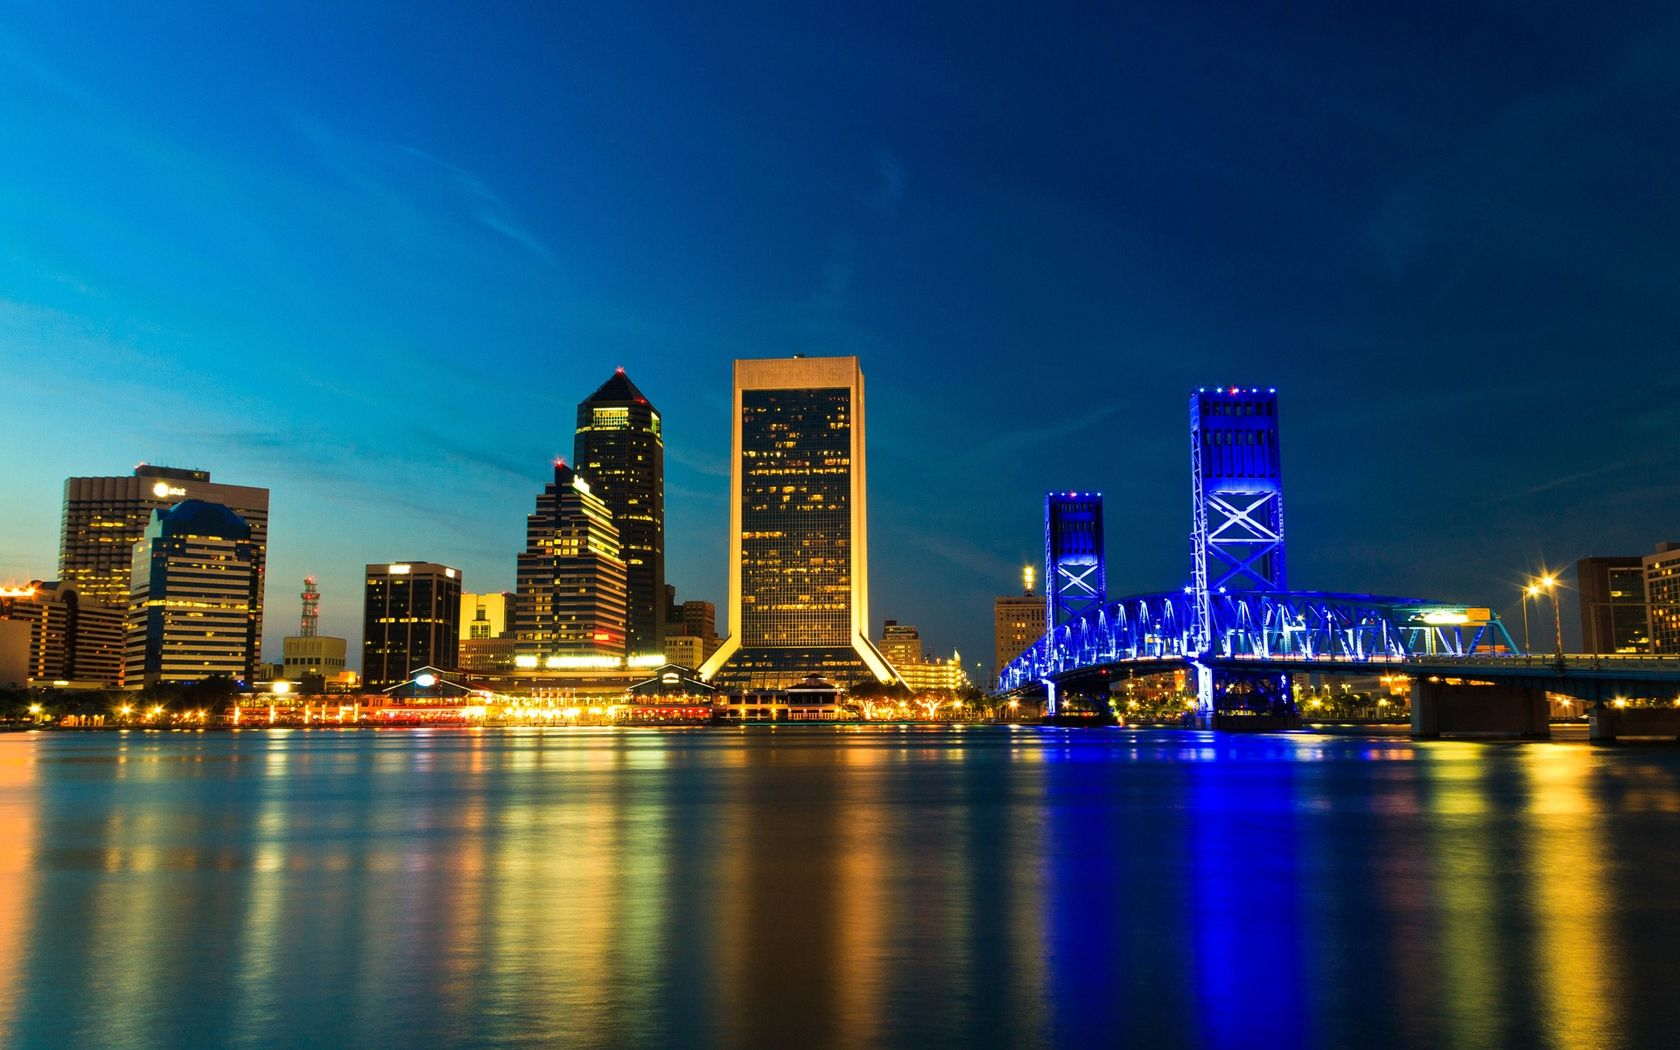 Download Wallpaper Usa Jacksonville Florida Bridge City Night